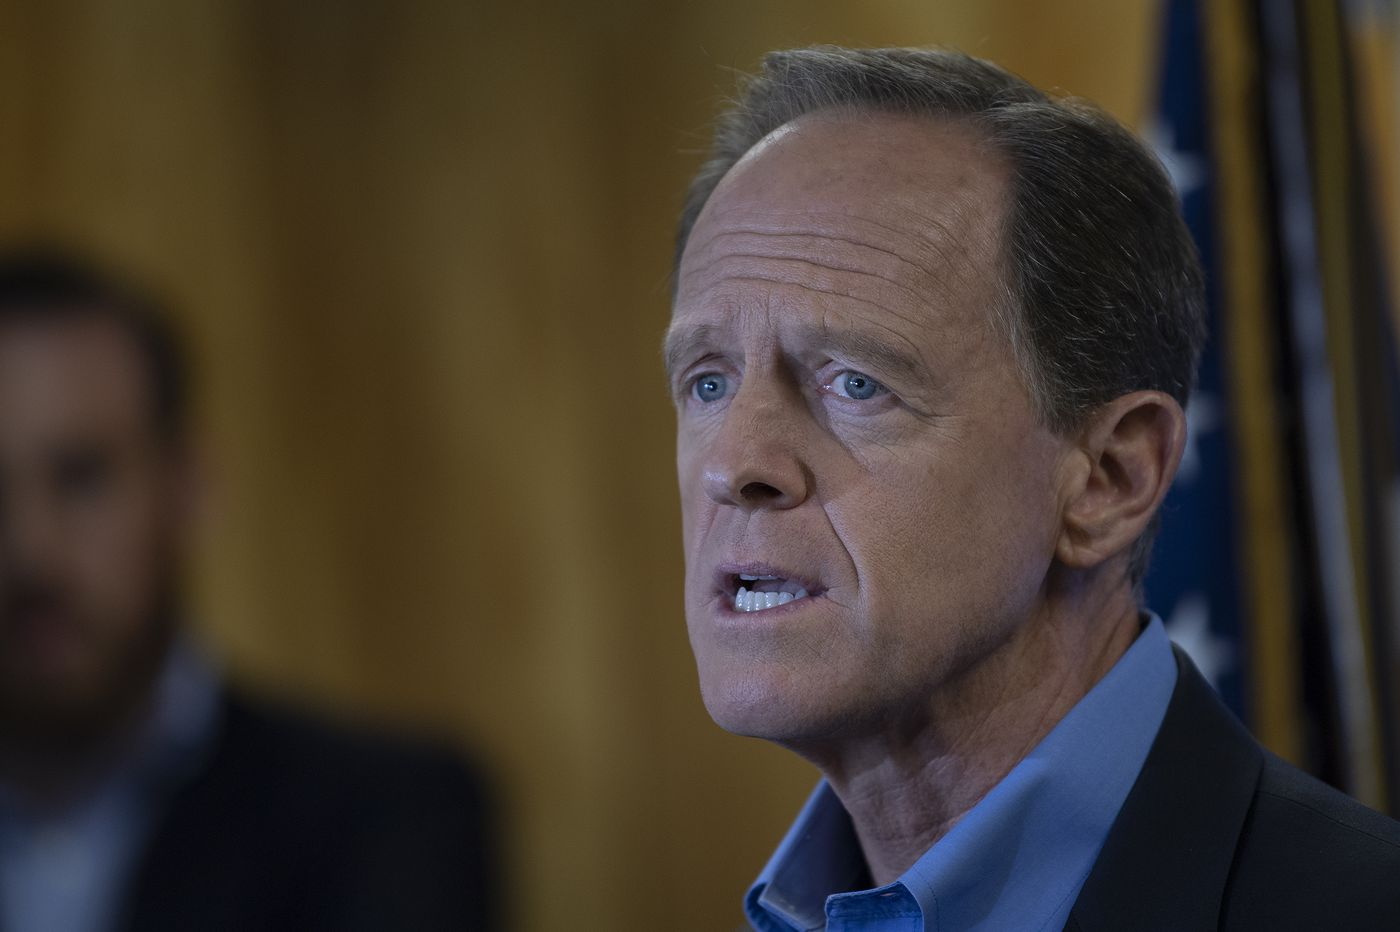 Pat Toomey defends Trump on impeachment: 'Where is the crime?'